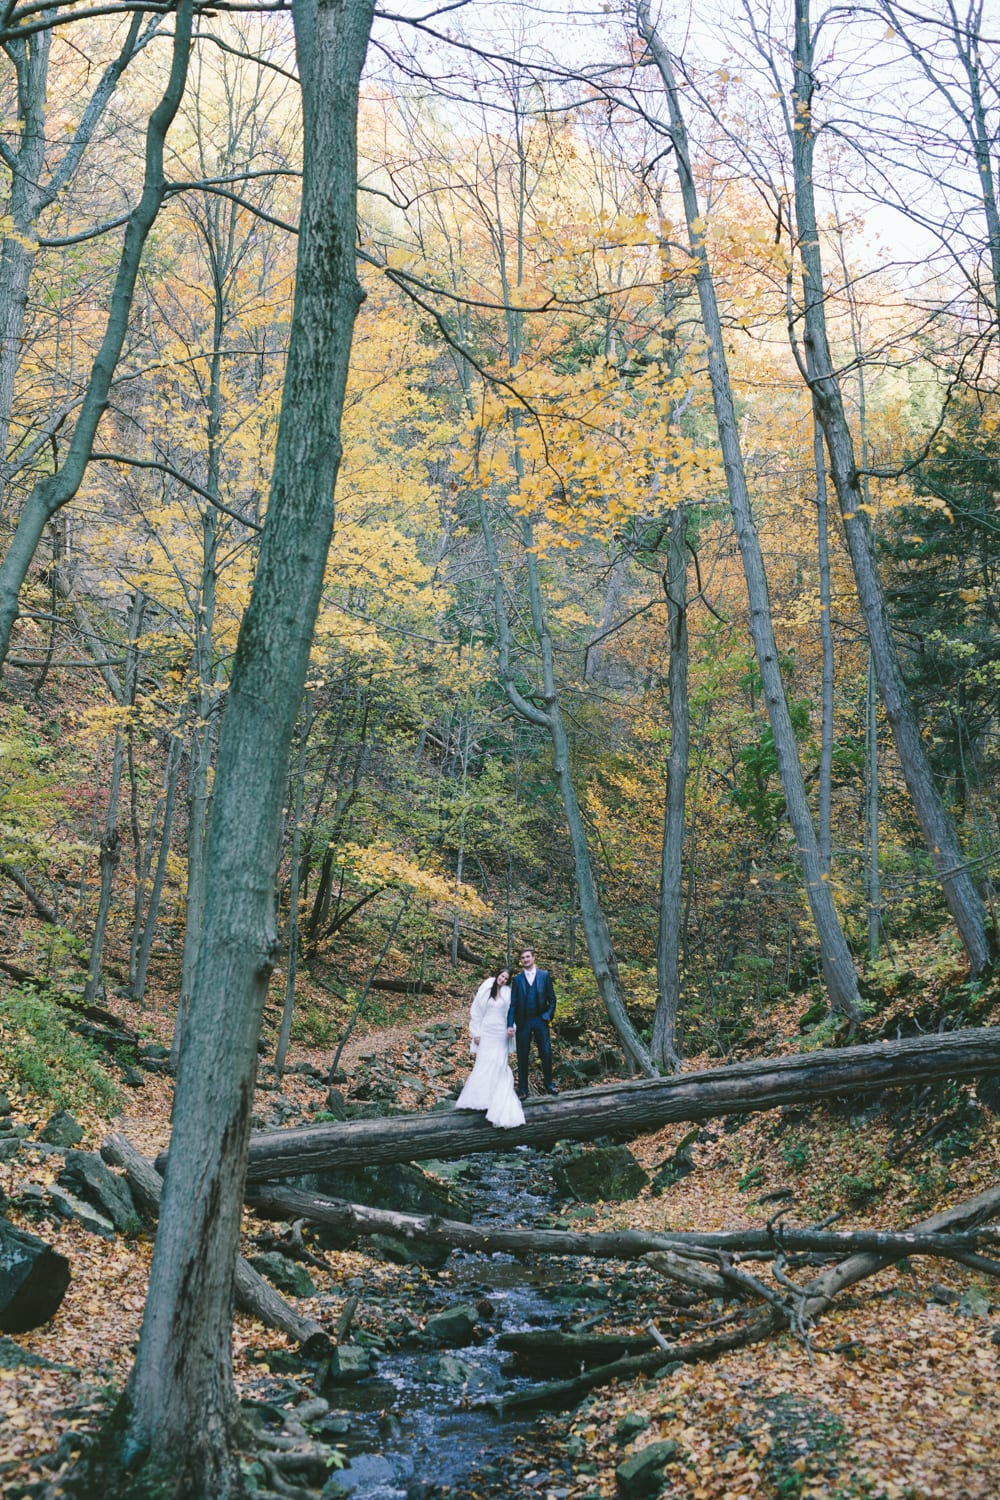 Fallen-Log-Forest-Zsuzsi-Pal-Photography-Wedding